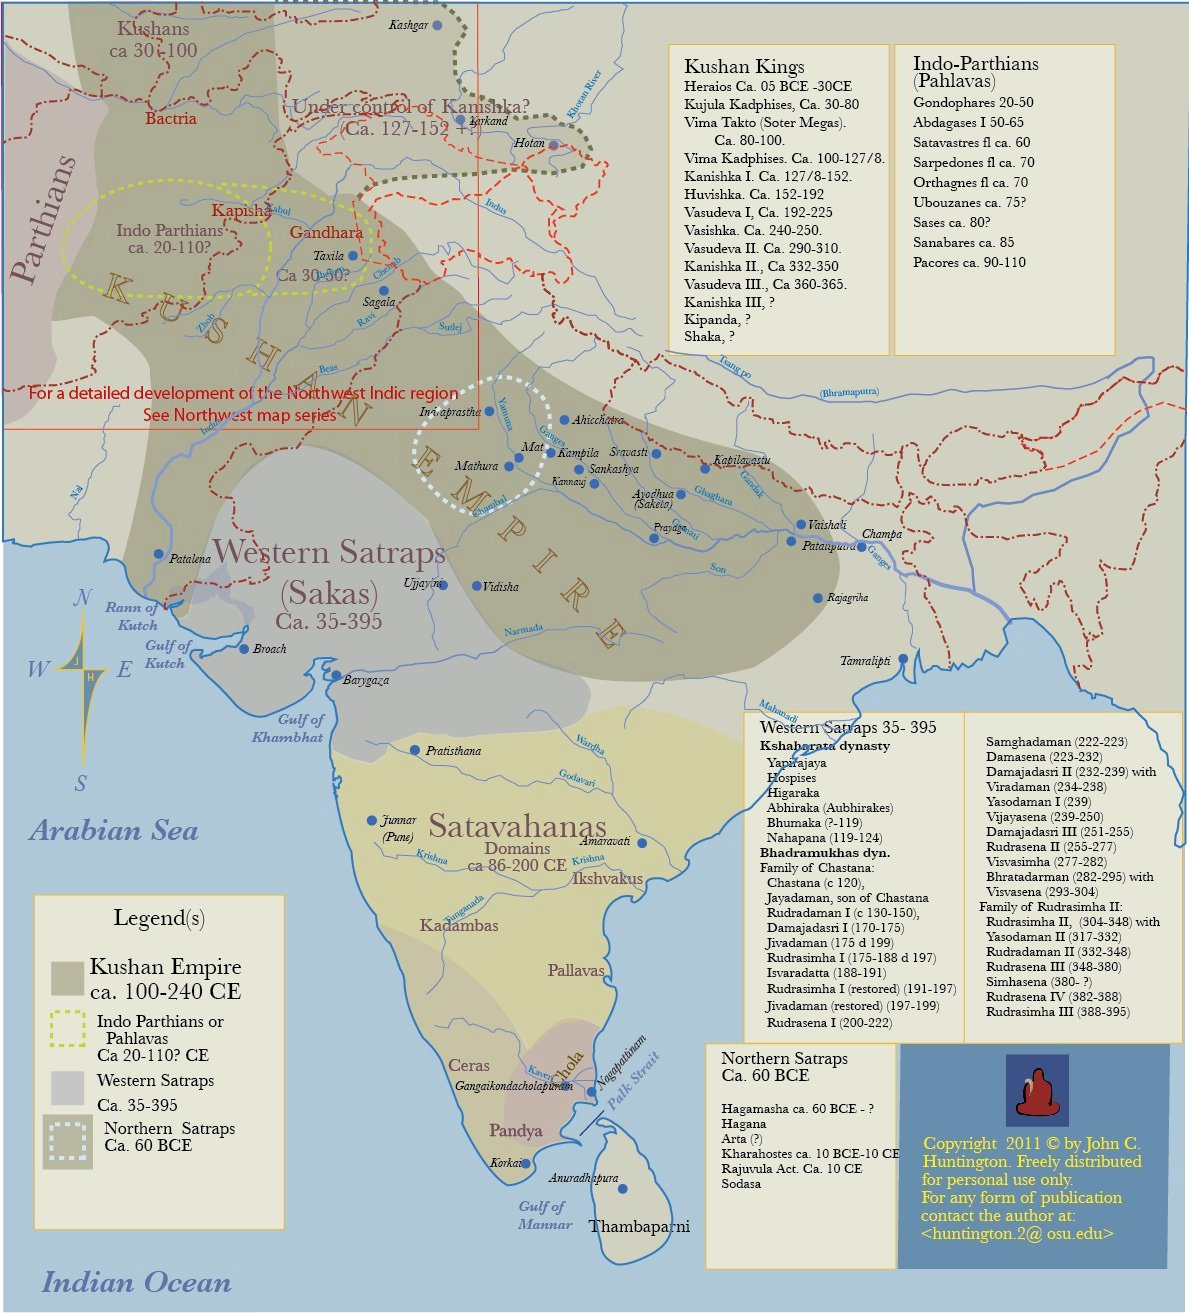 Kushan Empire & Neighboring States (Illustration) - Ancient History on parthian empire map, choson empire map, sassanid empire map, ancient egypt nubia and kush map, gupta empire map, chola kingdom map, hephthalite empire map, ming dynasty map, frankish kingdom map, timurid empire map, umayyad empire map, afghan empire map, ghana empire map, pallava empire map, union of soviet socialist republics map, kangxi empire map, delhi sultanate map, khmer empire map, ancient persia empire map, greco-bactrian empire map,